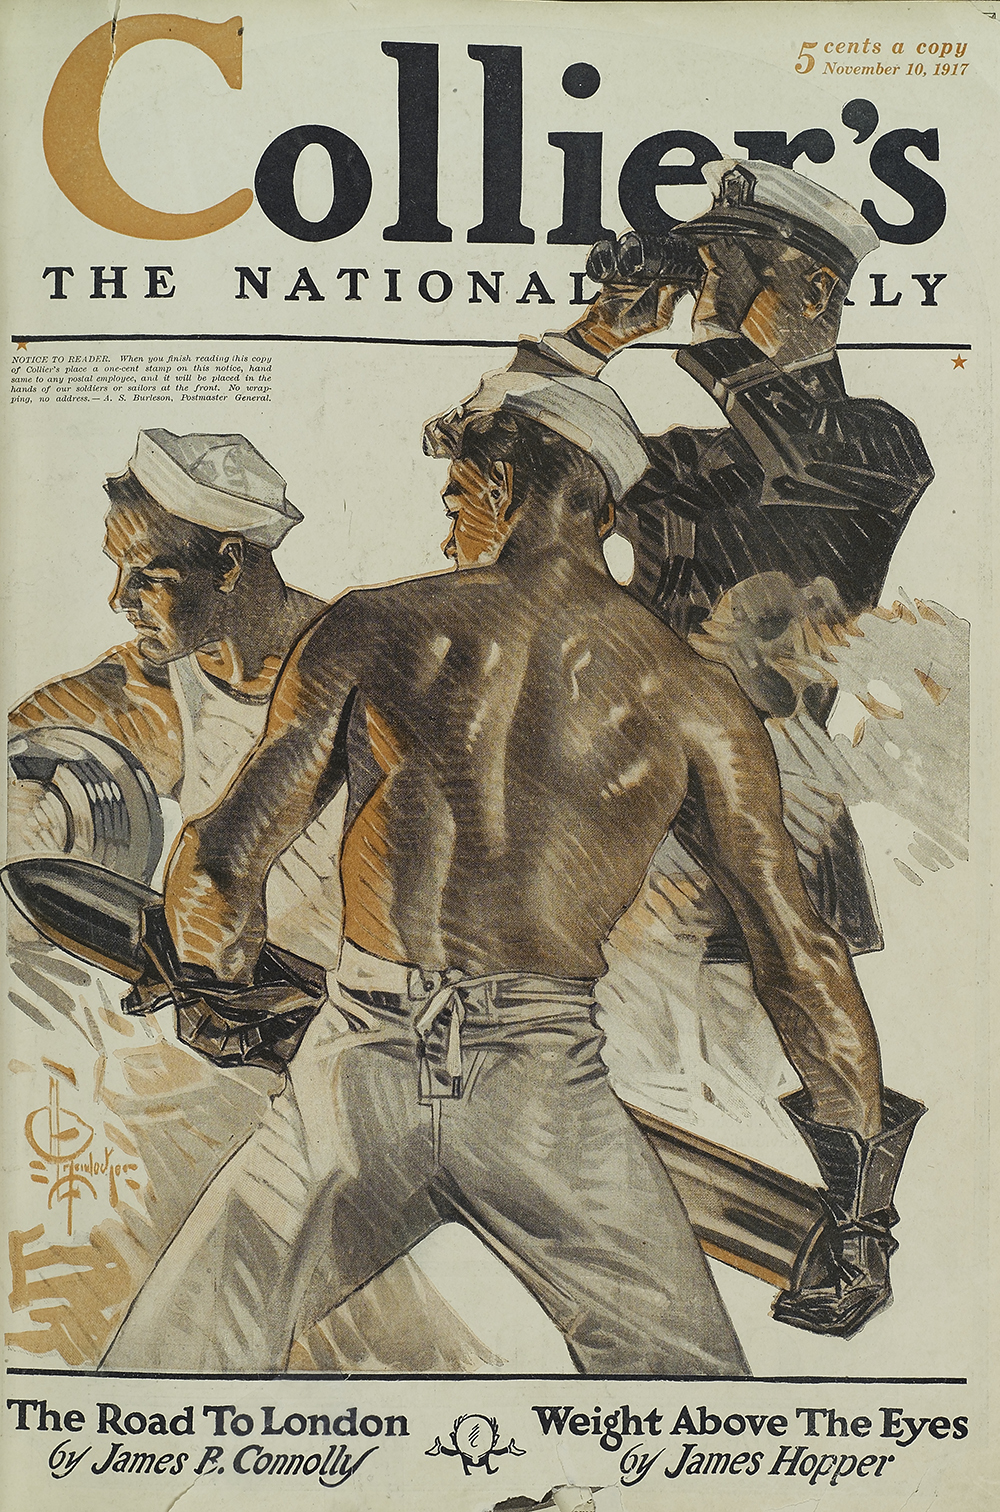 Collier's cover by J.C. Leyendecker, 1917. The New York Public Library, General Research Division.